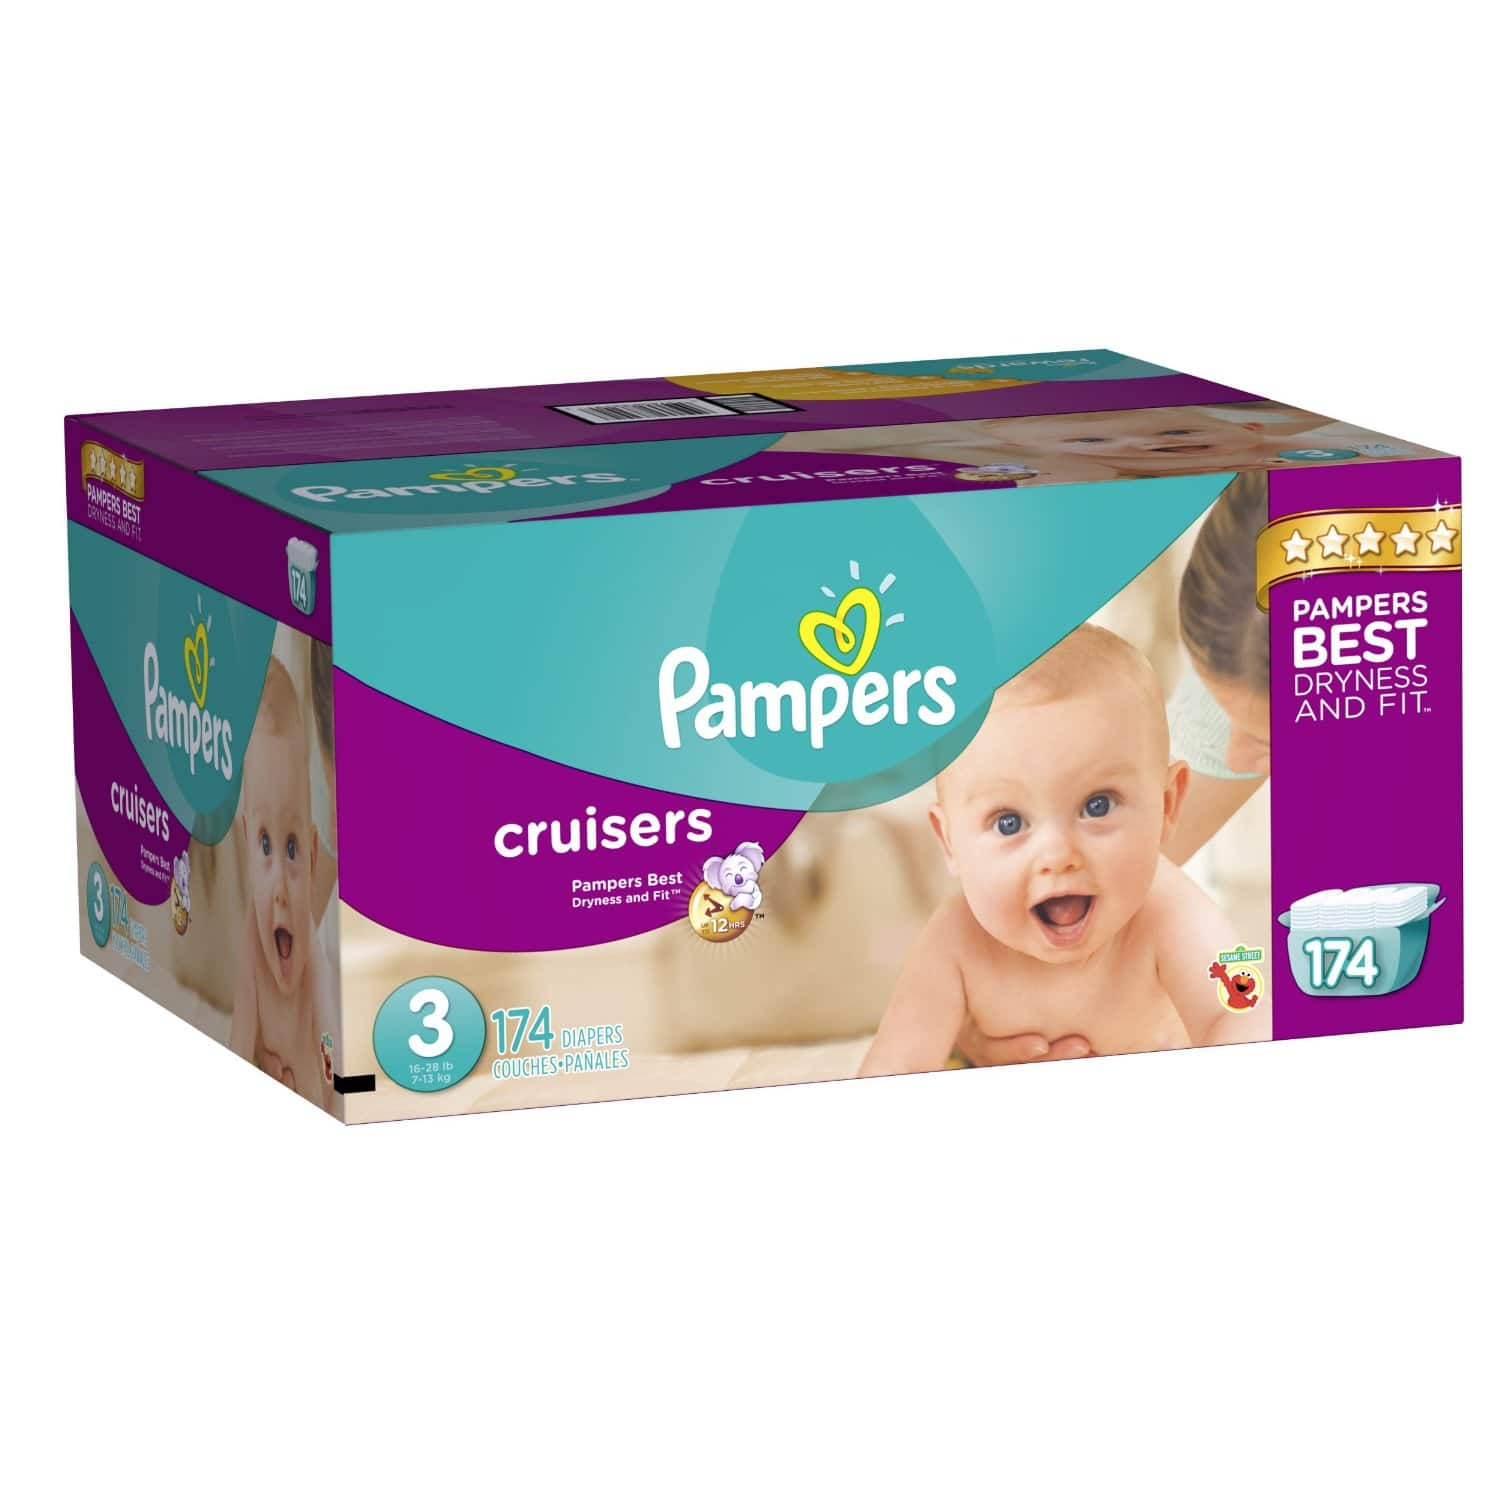 Amazon Family Members: 174-Ct Pampers Cruisers Size 3 Diapers  $24.20 + Free Shipping